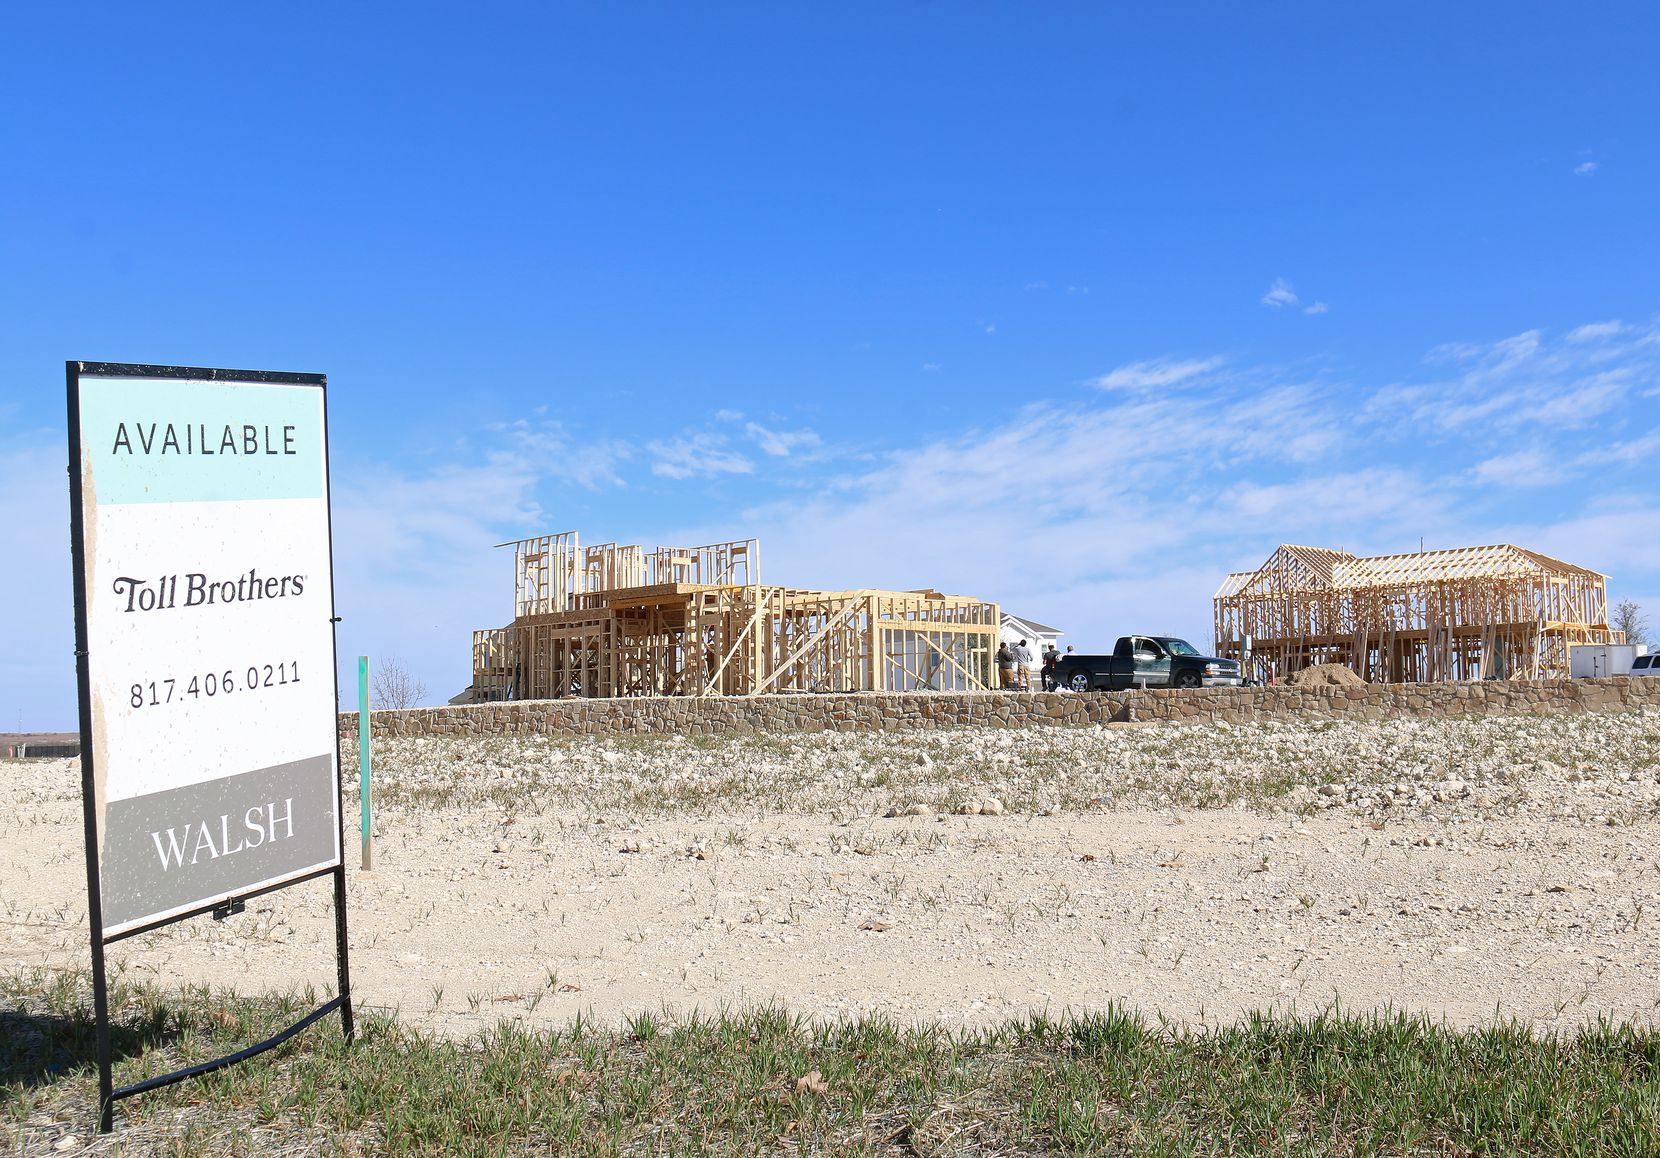 About 600 houses have been built in the Walsh Ranch development.